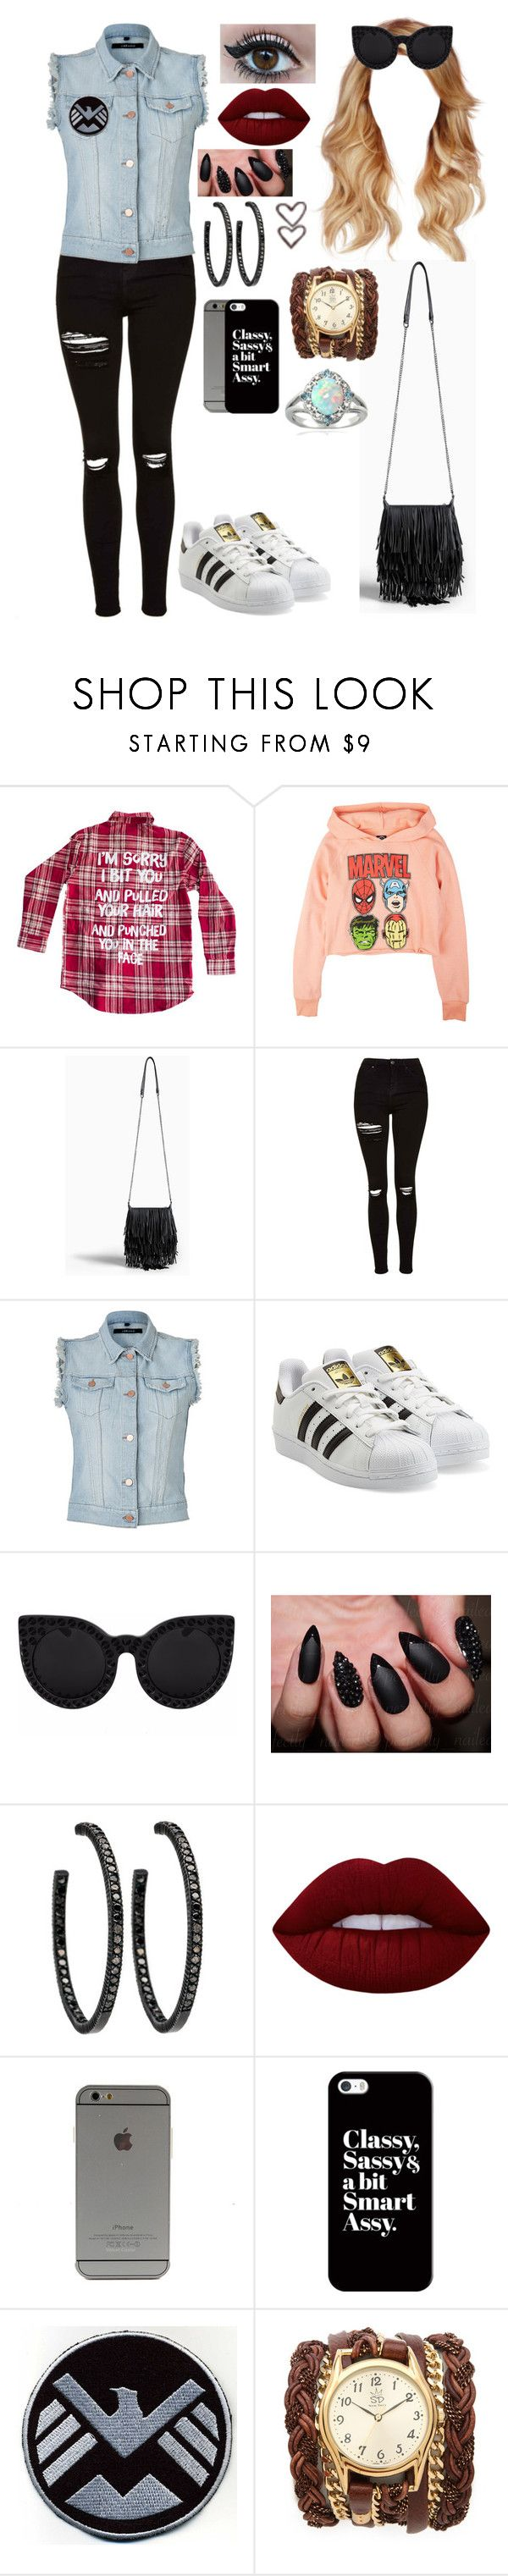 """Untitled #610"" by skh-siera18 ❤ liked on Polyvore featuring Torrid, Topshop, J Brand, adidas Originals, Delalle, Lime Crime, Casetify, Sara Designs and Glitzy Rocks"